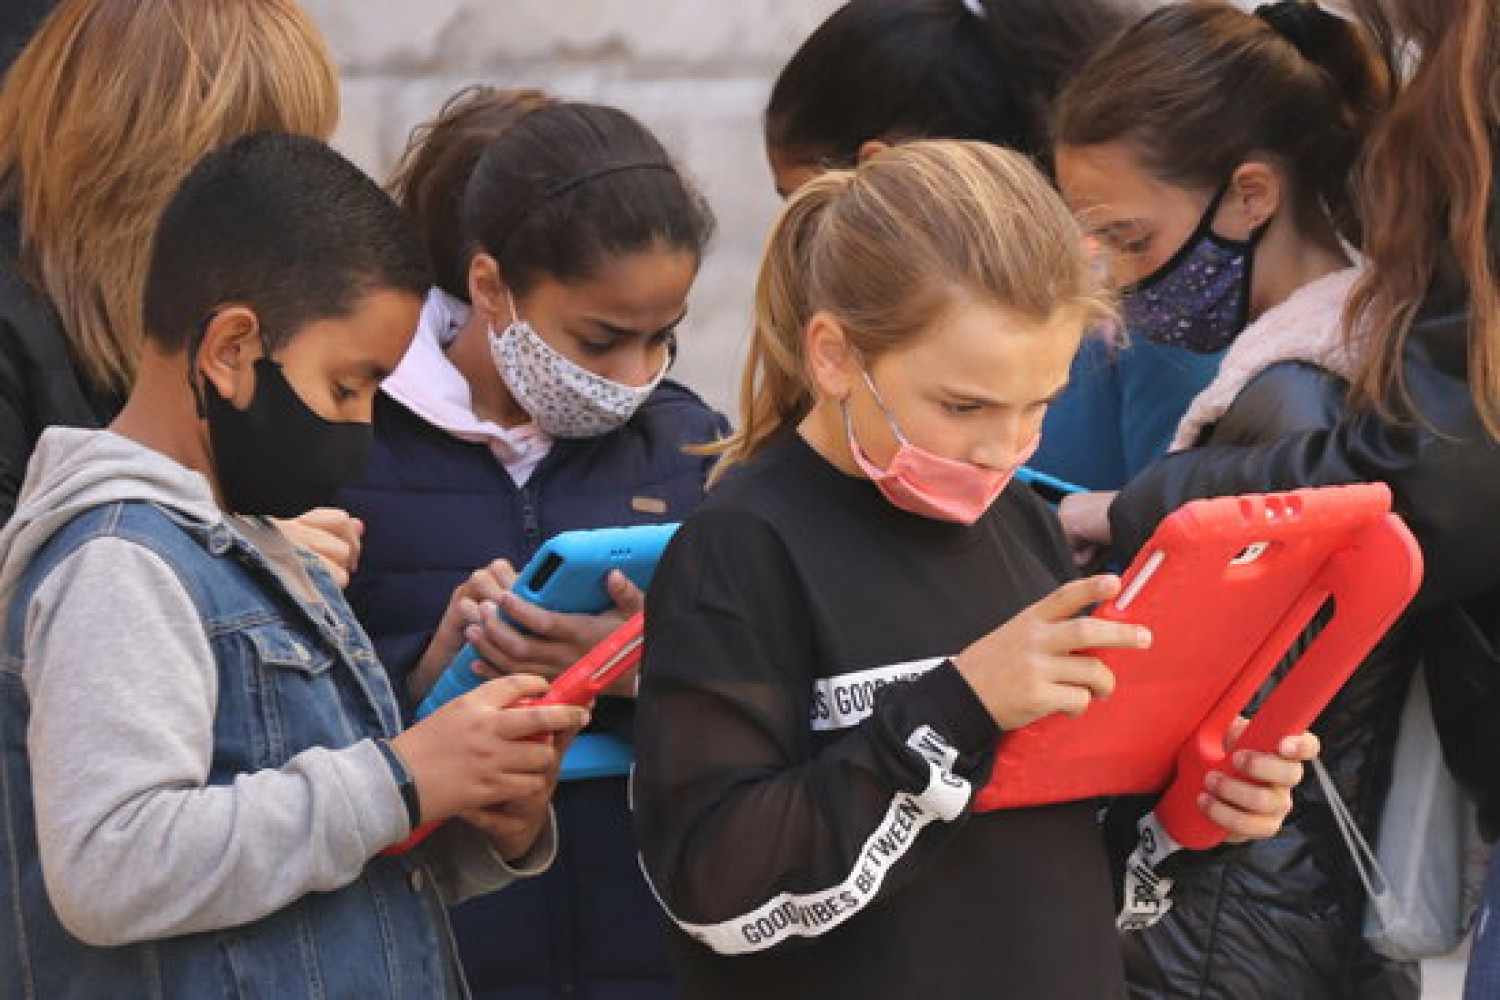 Students from the Saavedra school in Tarragona participate in the mEDU Tarraco project (by Eloi Tost)